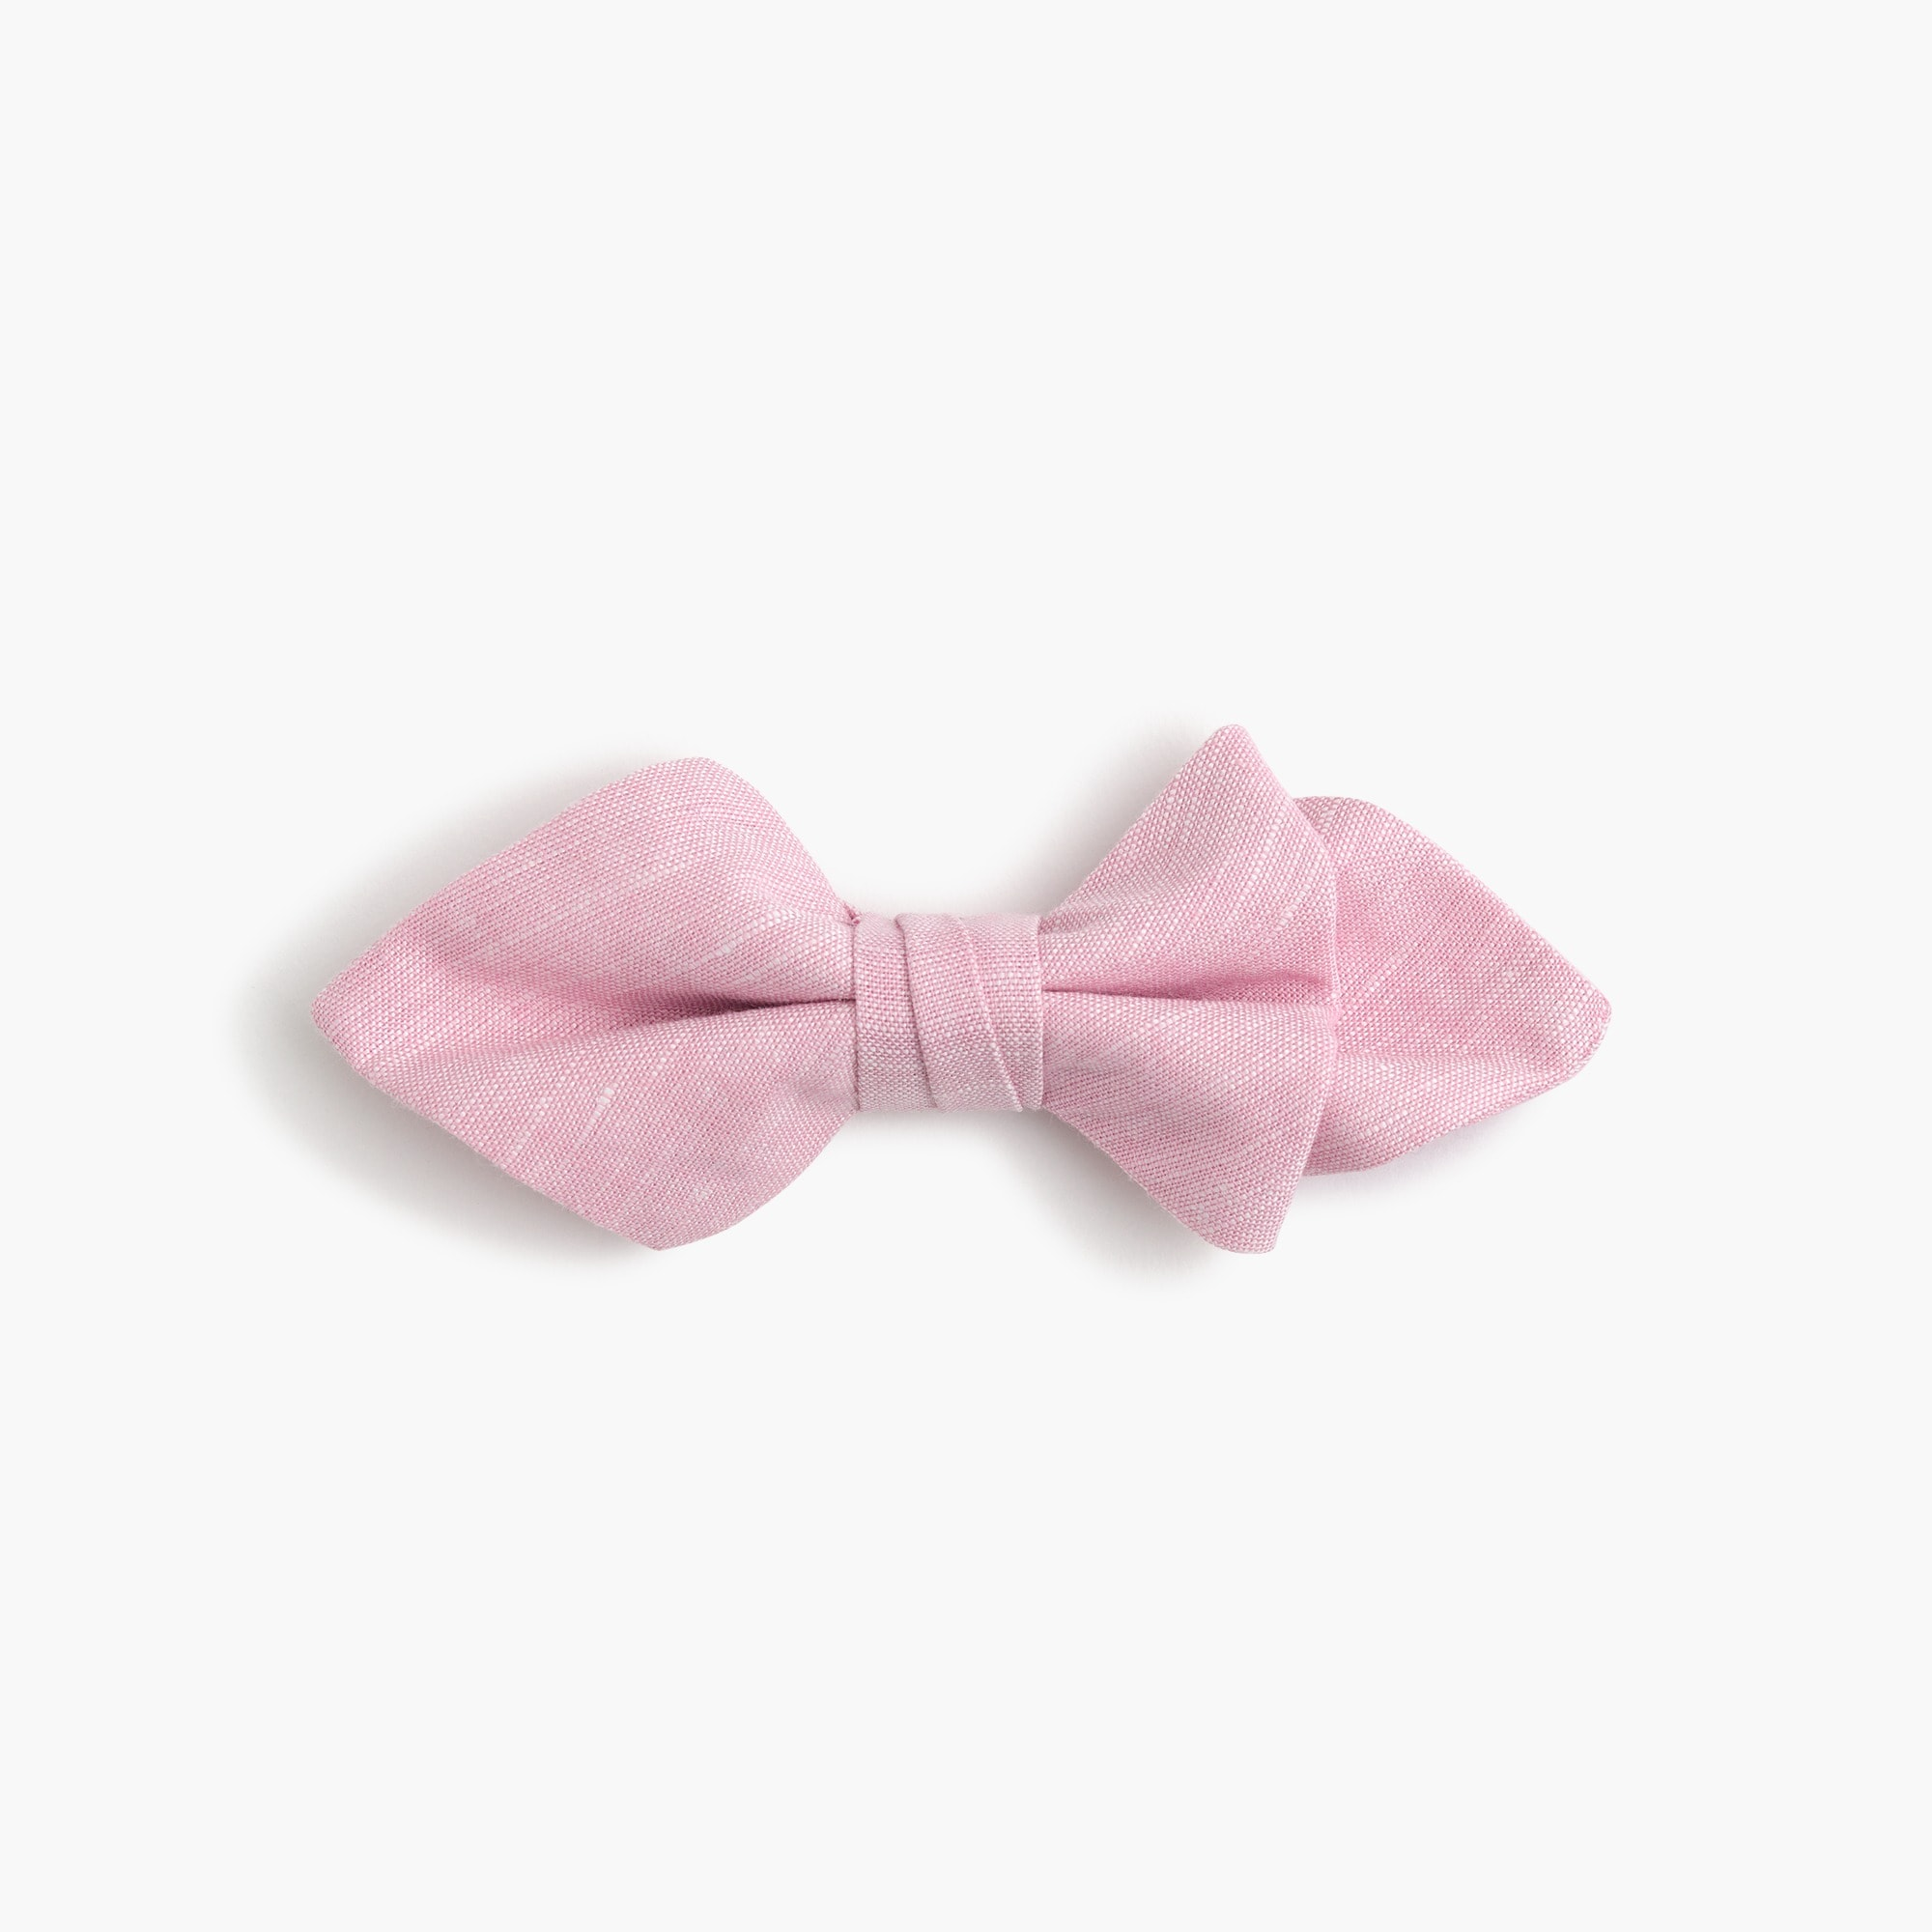 Boys' cotton-linen bow tie in pink boy ties & bow ties c